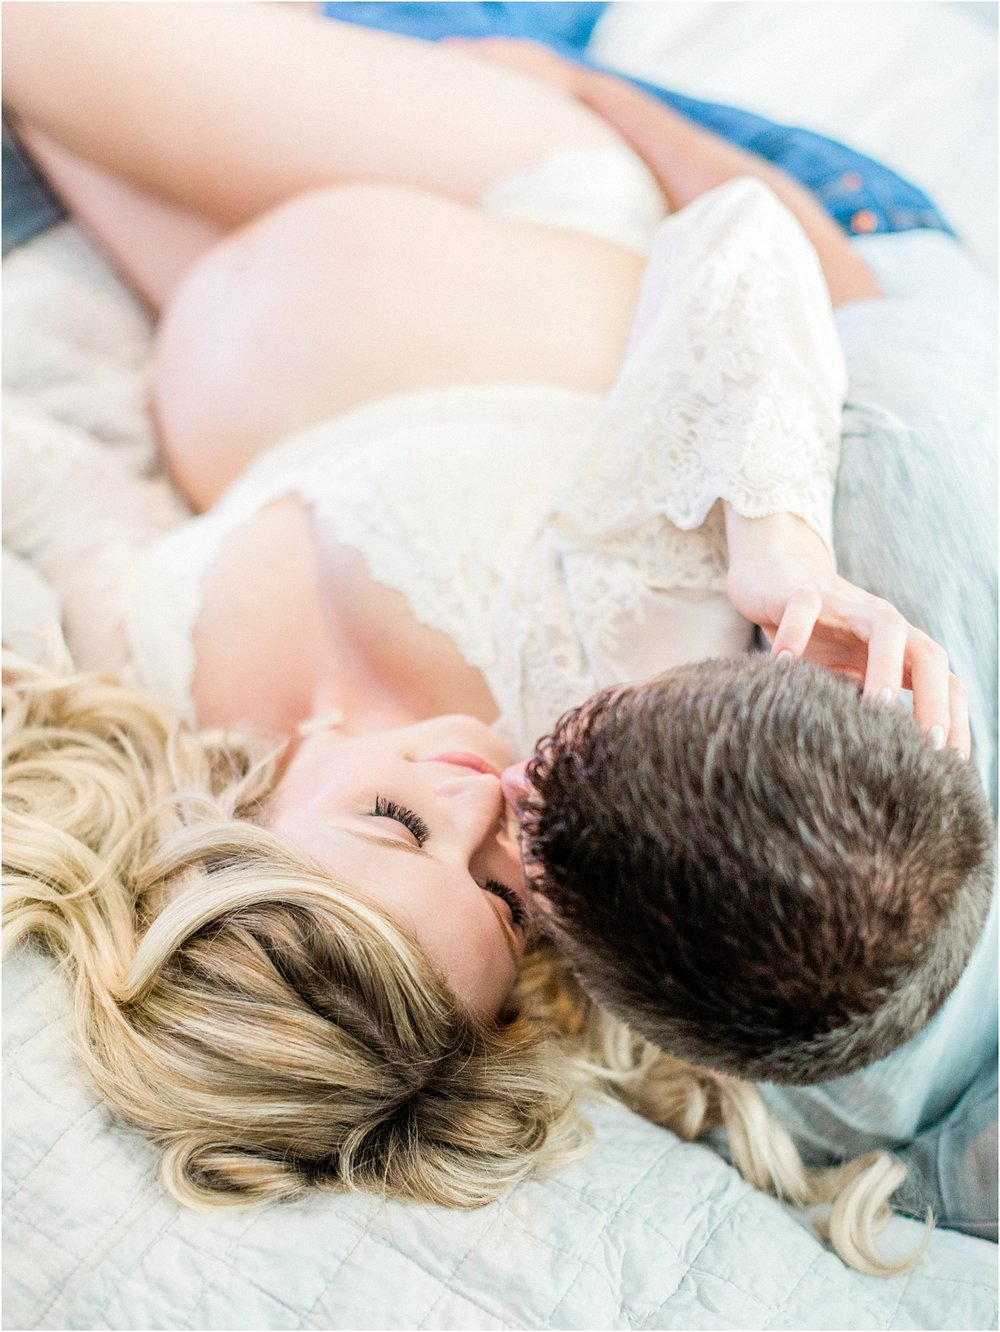 Lisa Silva Photography- Ponte Vedra Beach, St. Augustine and Jacksonville, Florida Fine Art Film Wedding and Boudoir Photography- Lifestyle Maternity Session_0033.jpg